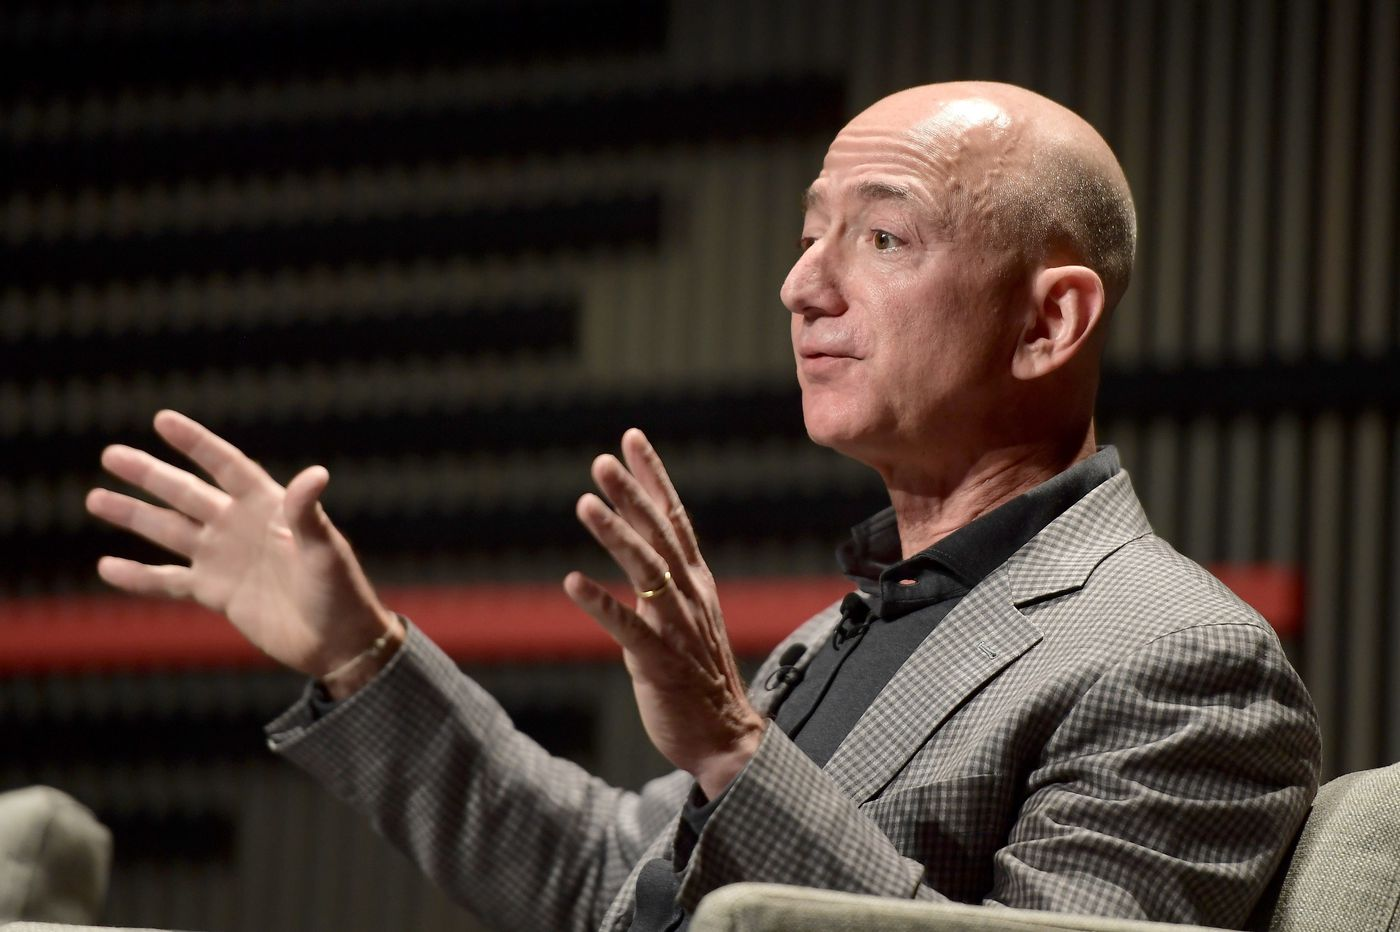 Amazon makes 50 cents on every dollar spent online in the U.S. Is that too much market dominance?